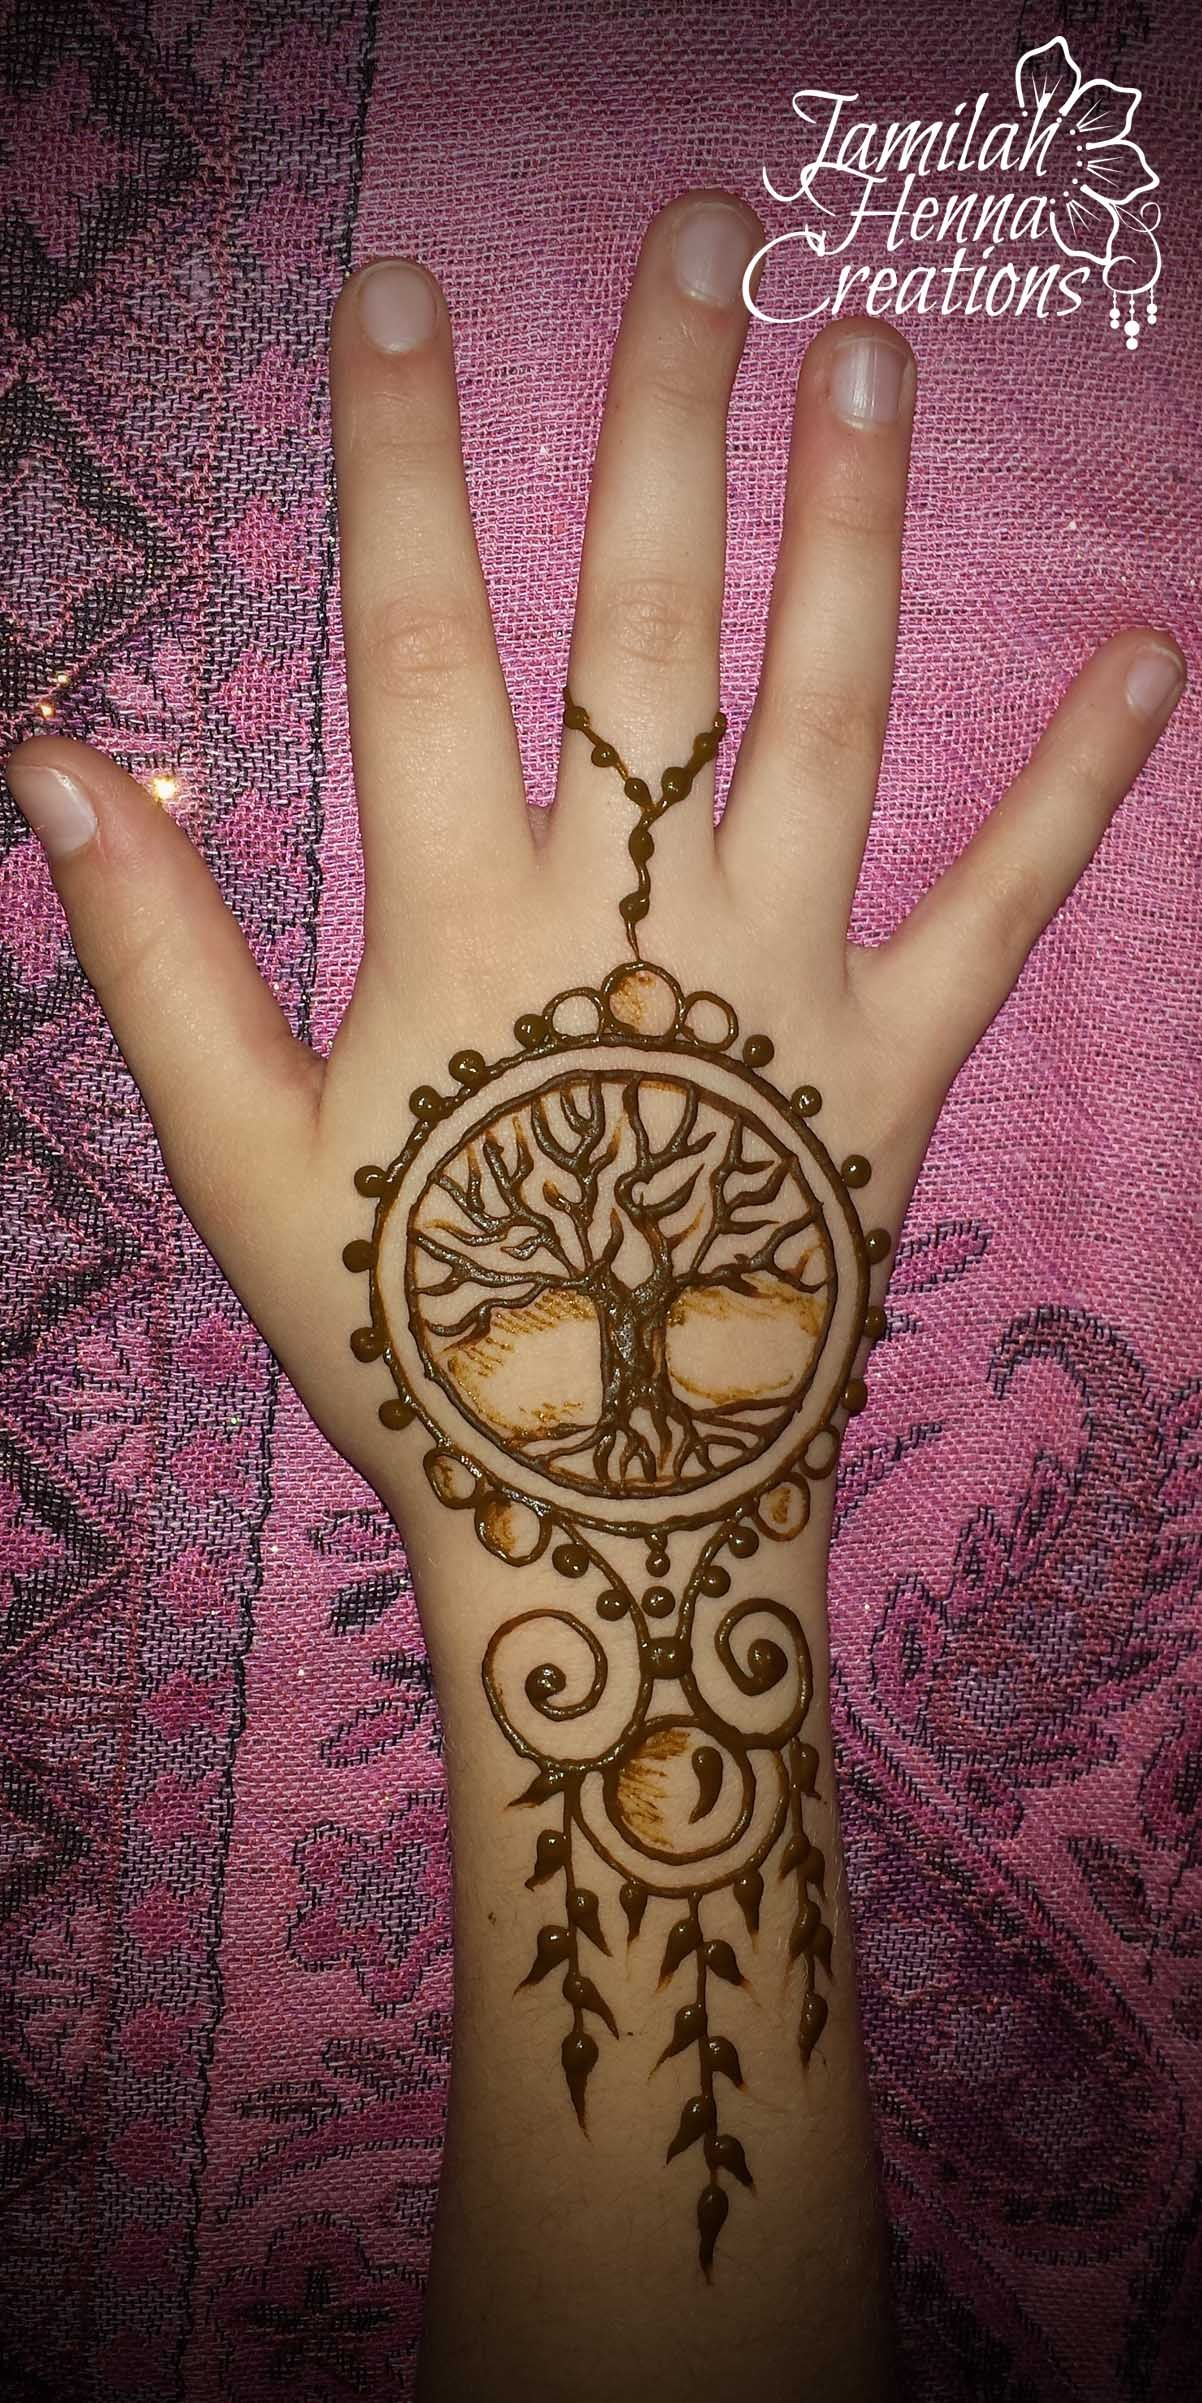 Henna Mehndi Tattoo Designs Idea For Wrist: Tree Of Life Henna Jewelry Www.jamilahhennacreations.com